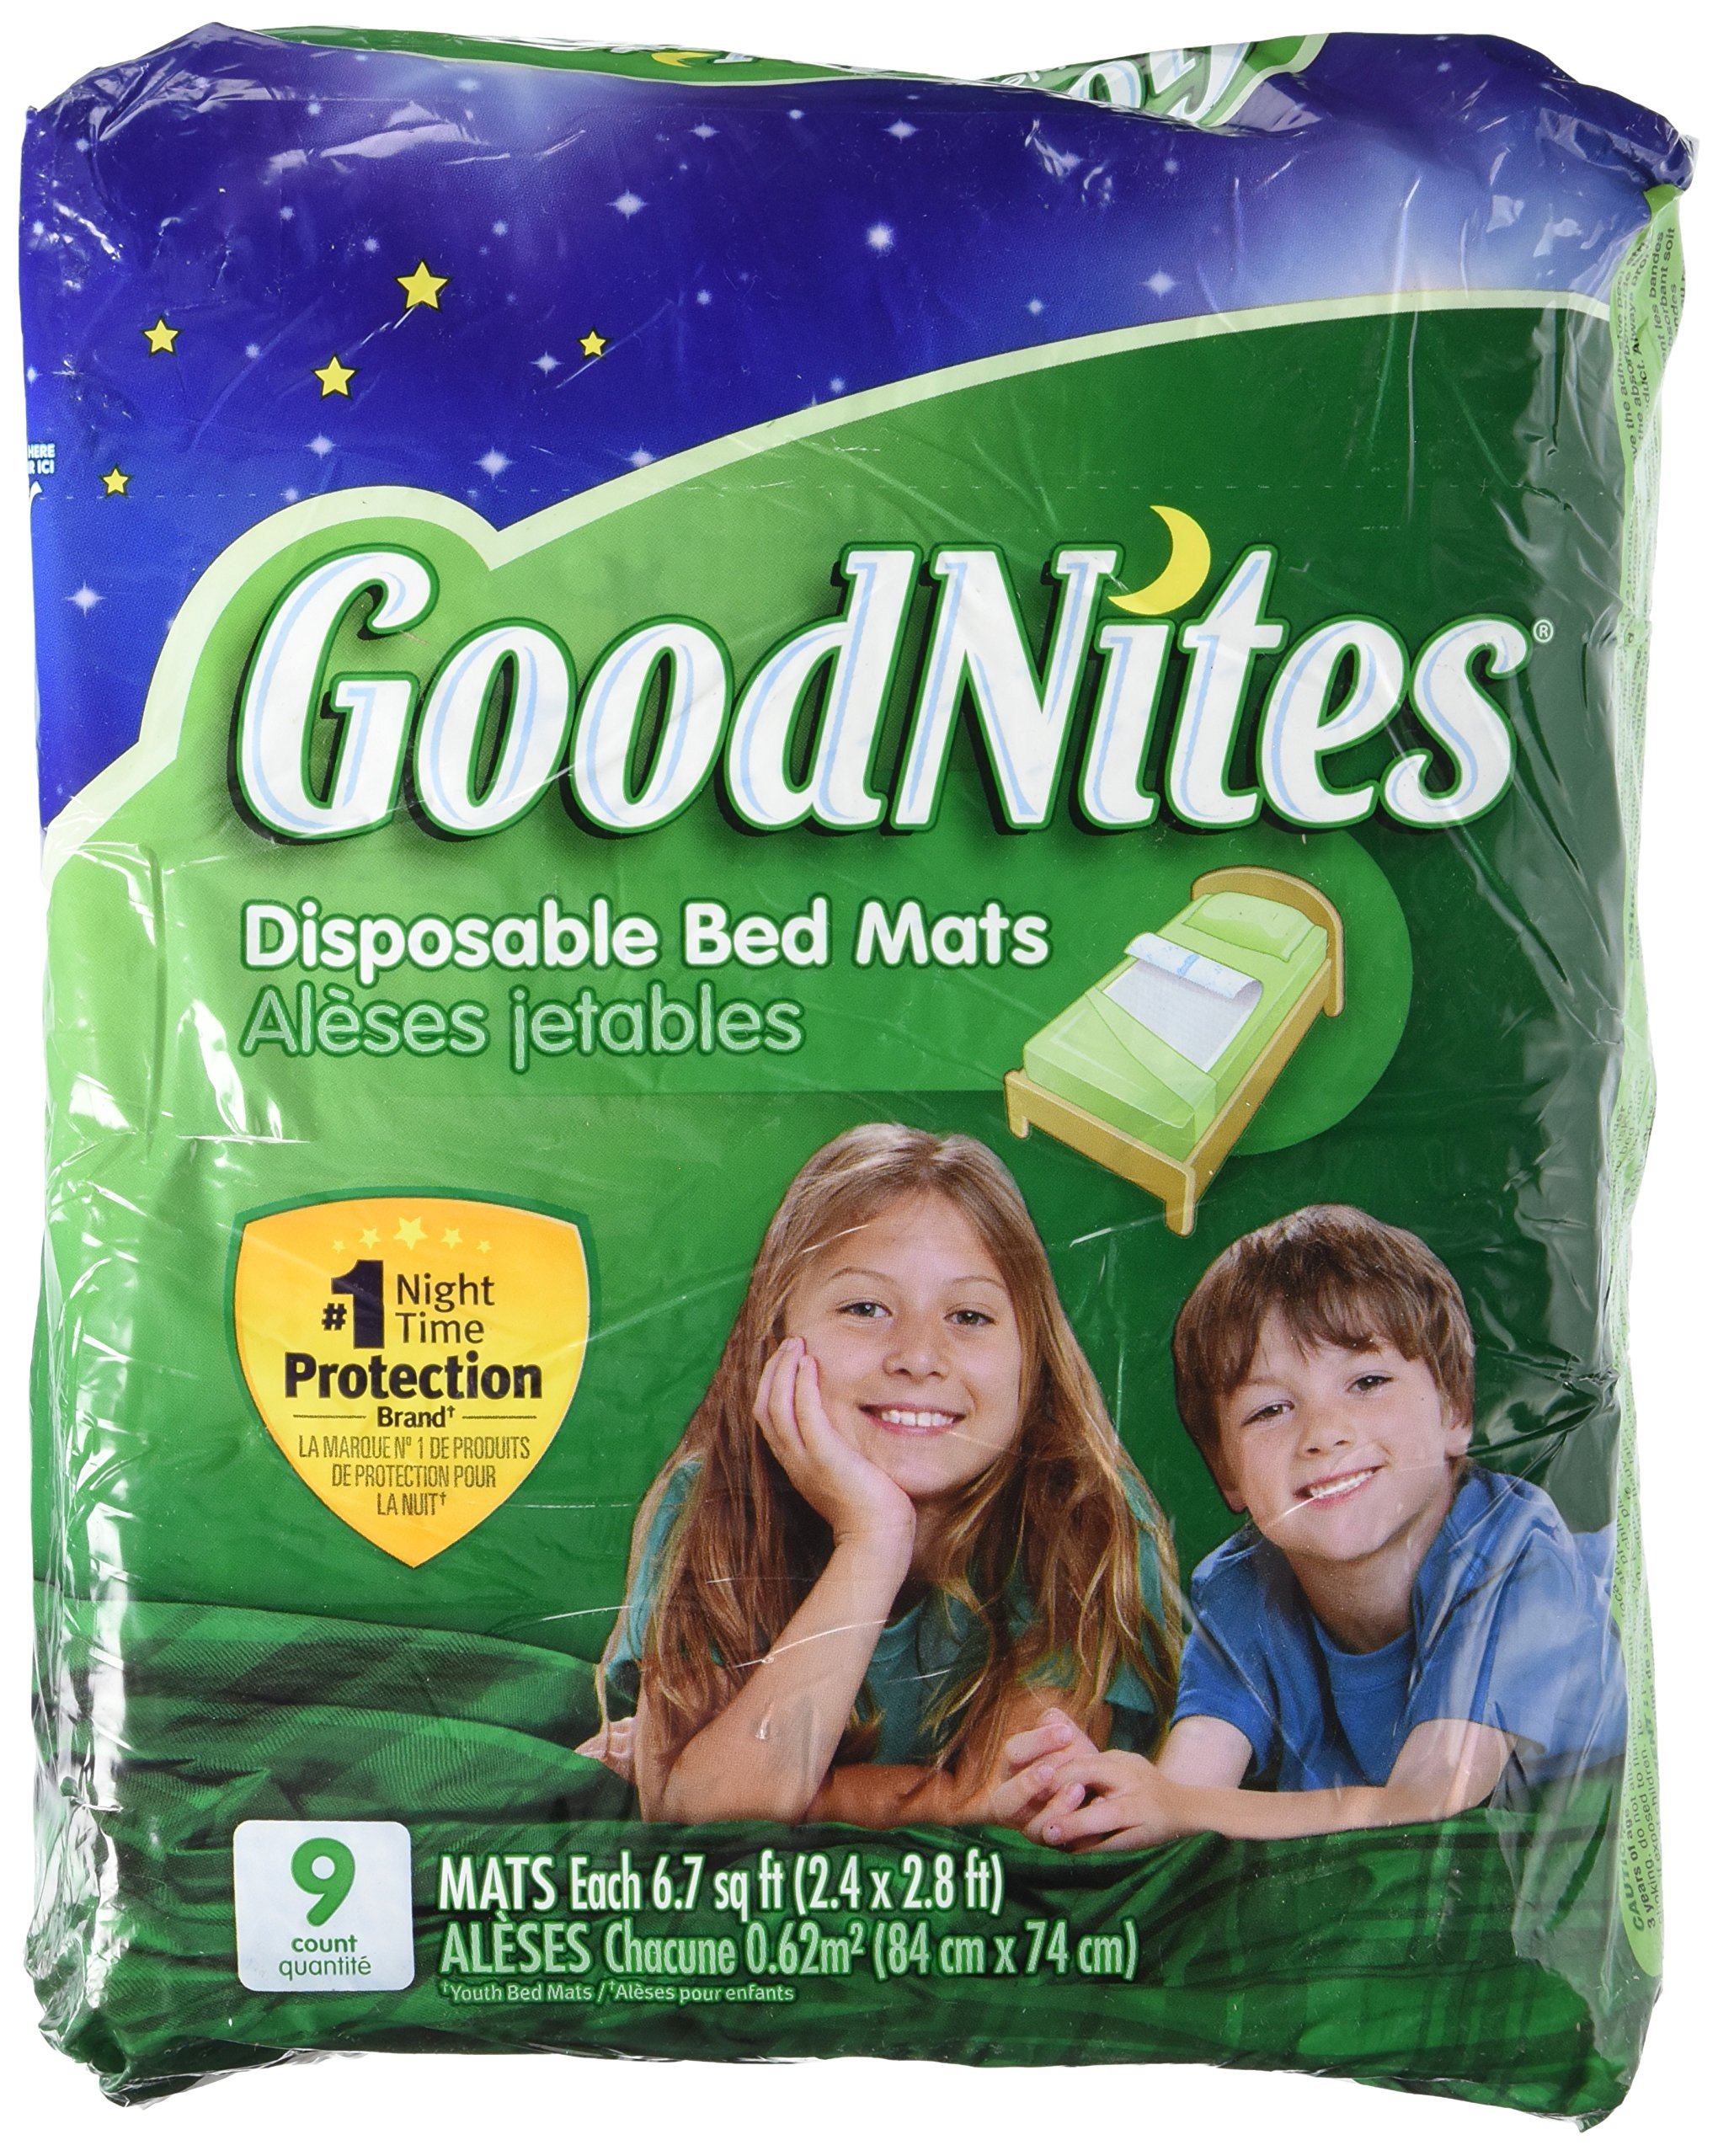 Bulk Buys GoodNites 9 Pack Disposable Bed Mats - Pack of 4